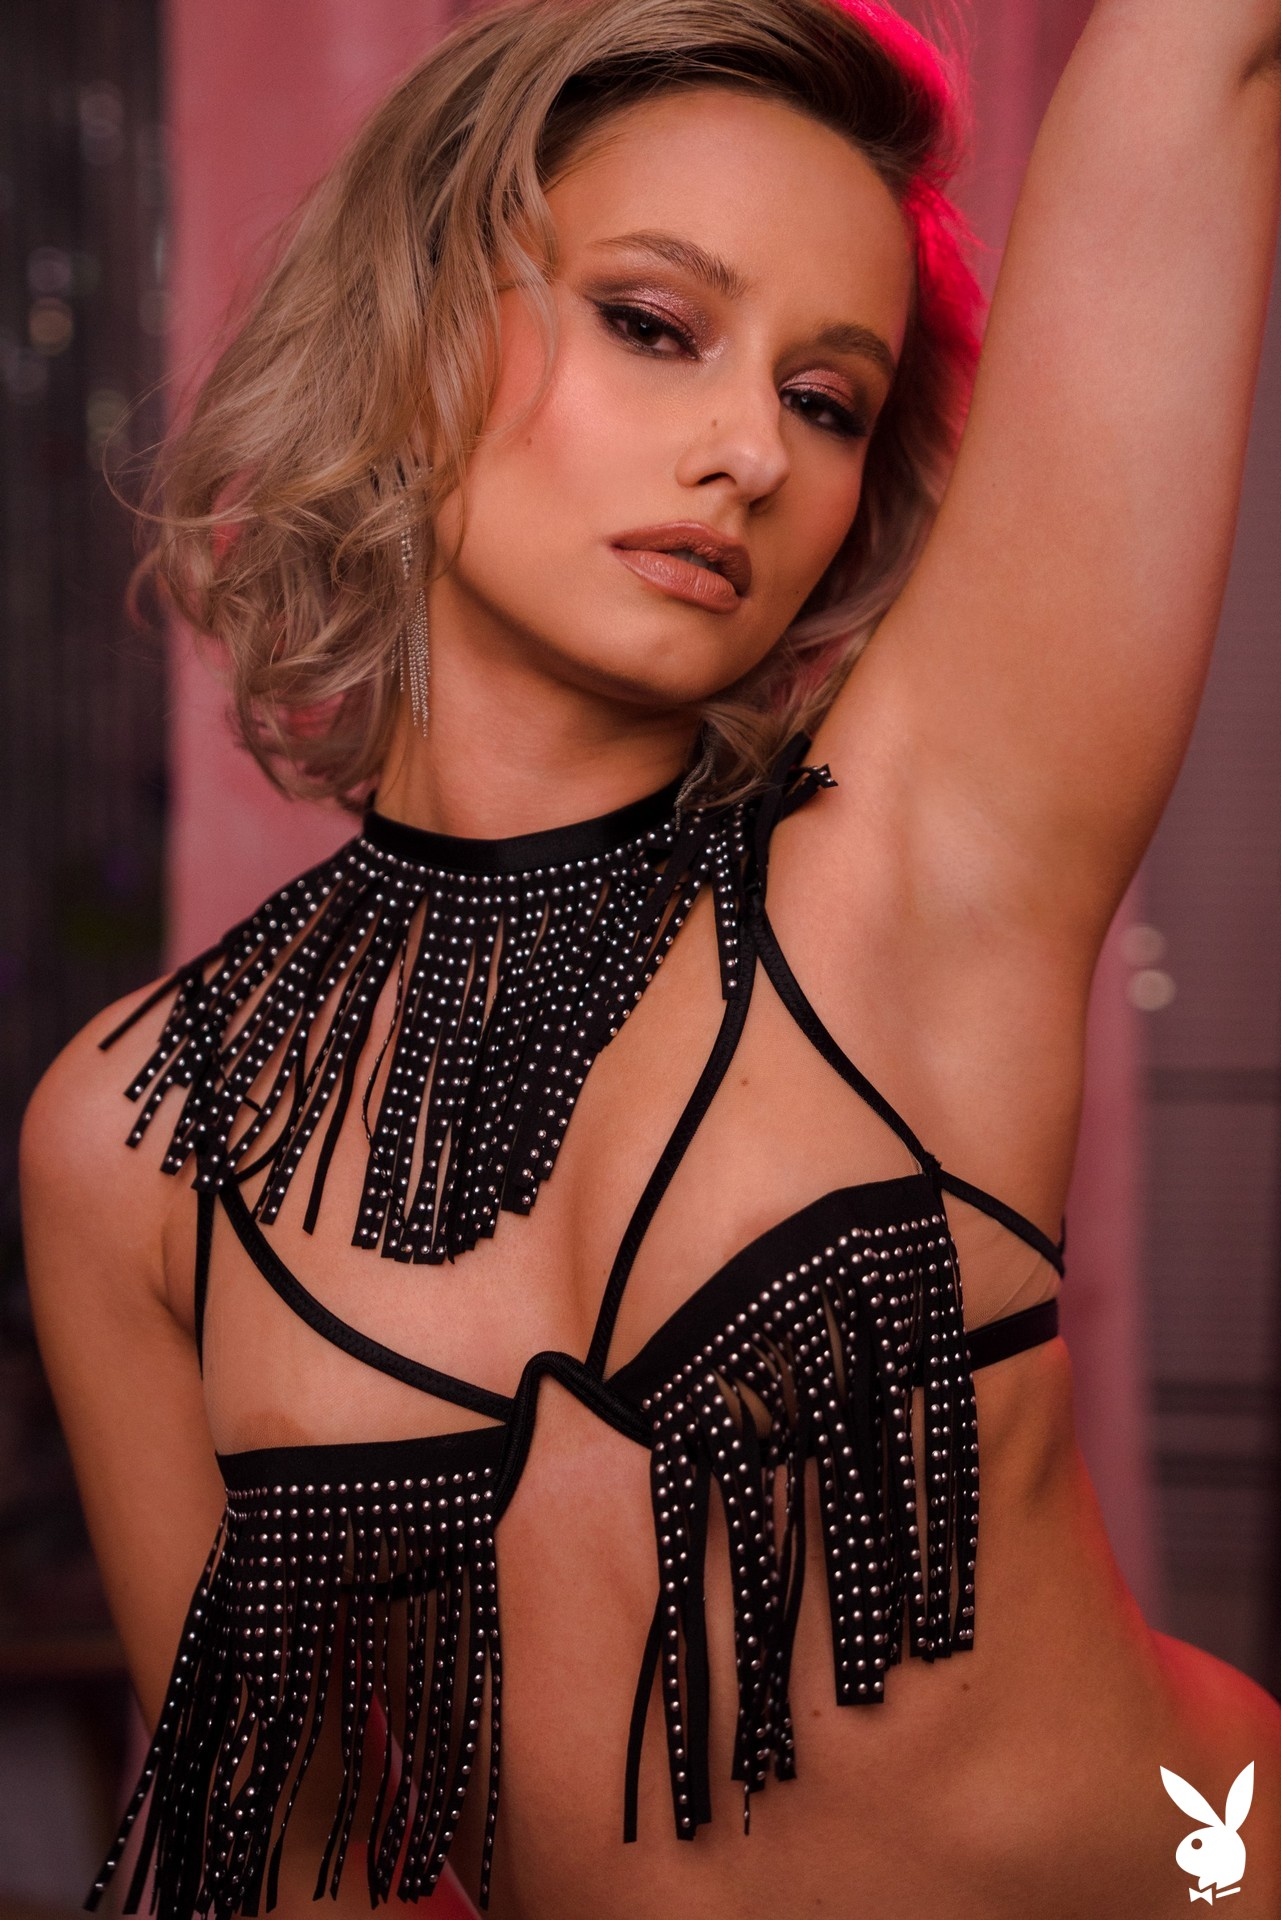 Polina In Stage Presence Playboy Plus (8)